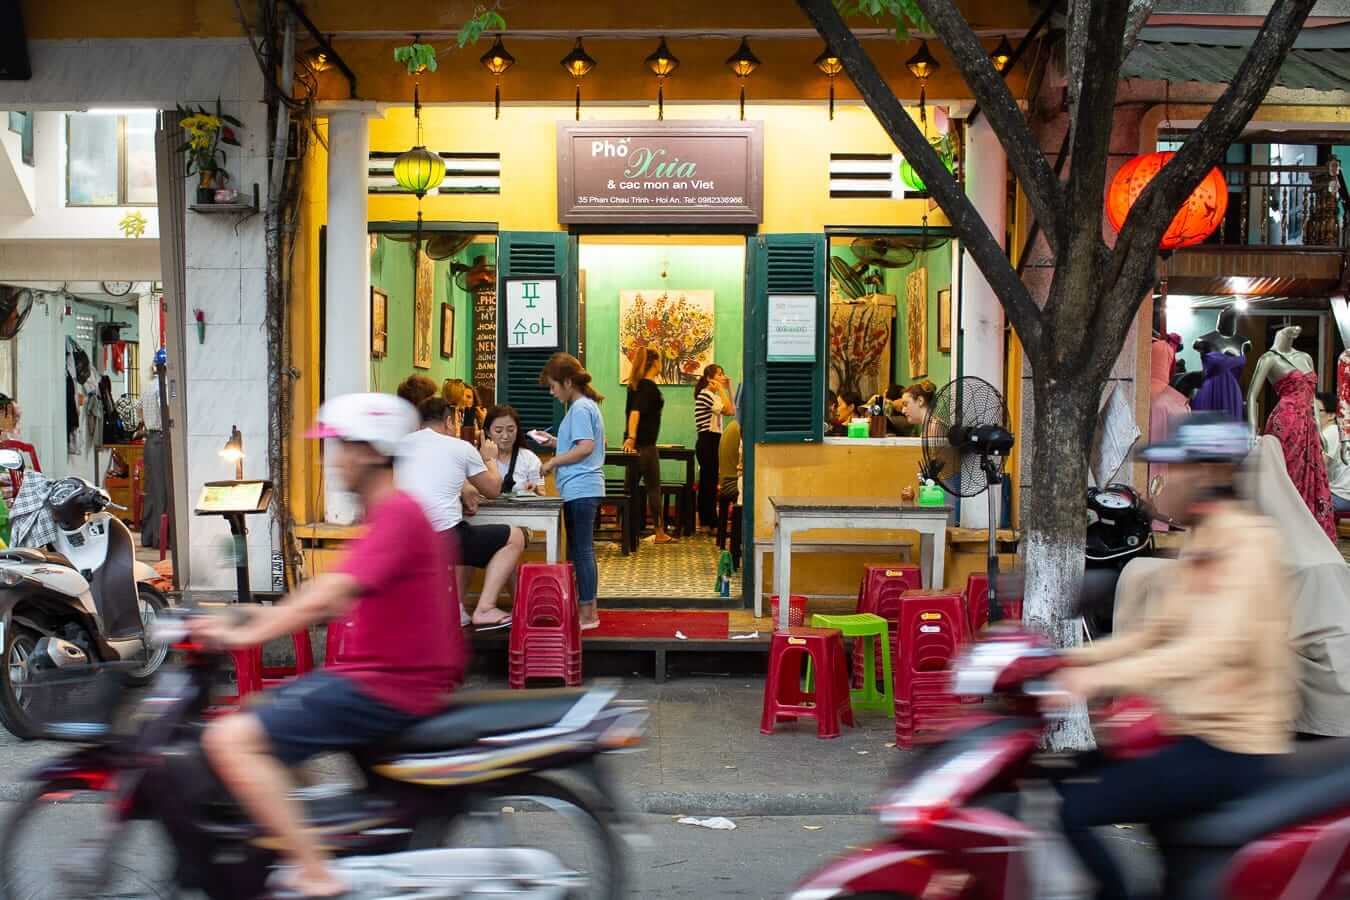 Motorcycles drive past Pho Xua: Best Pho in Hoi An